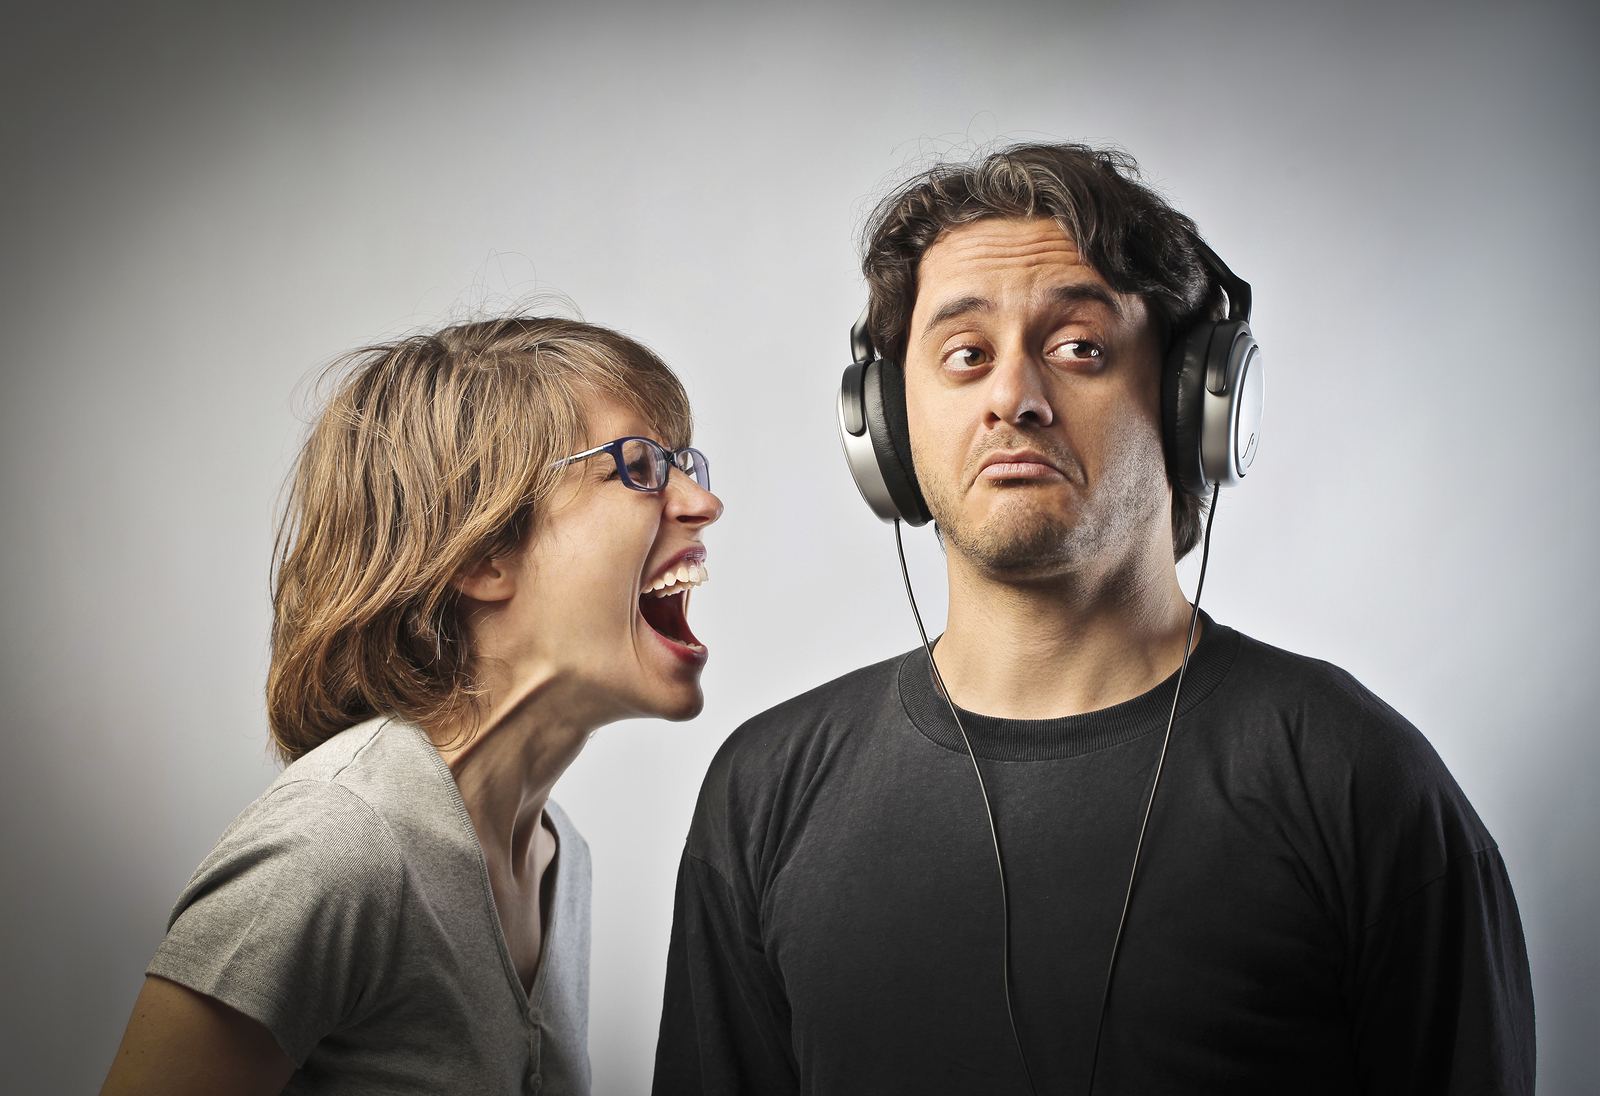 bigstock-Angry-wife-screaming-against-h-32726765